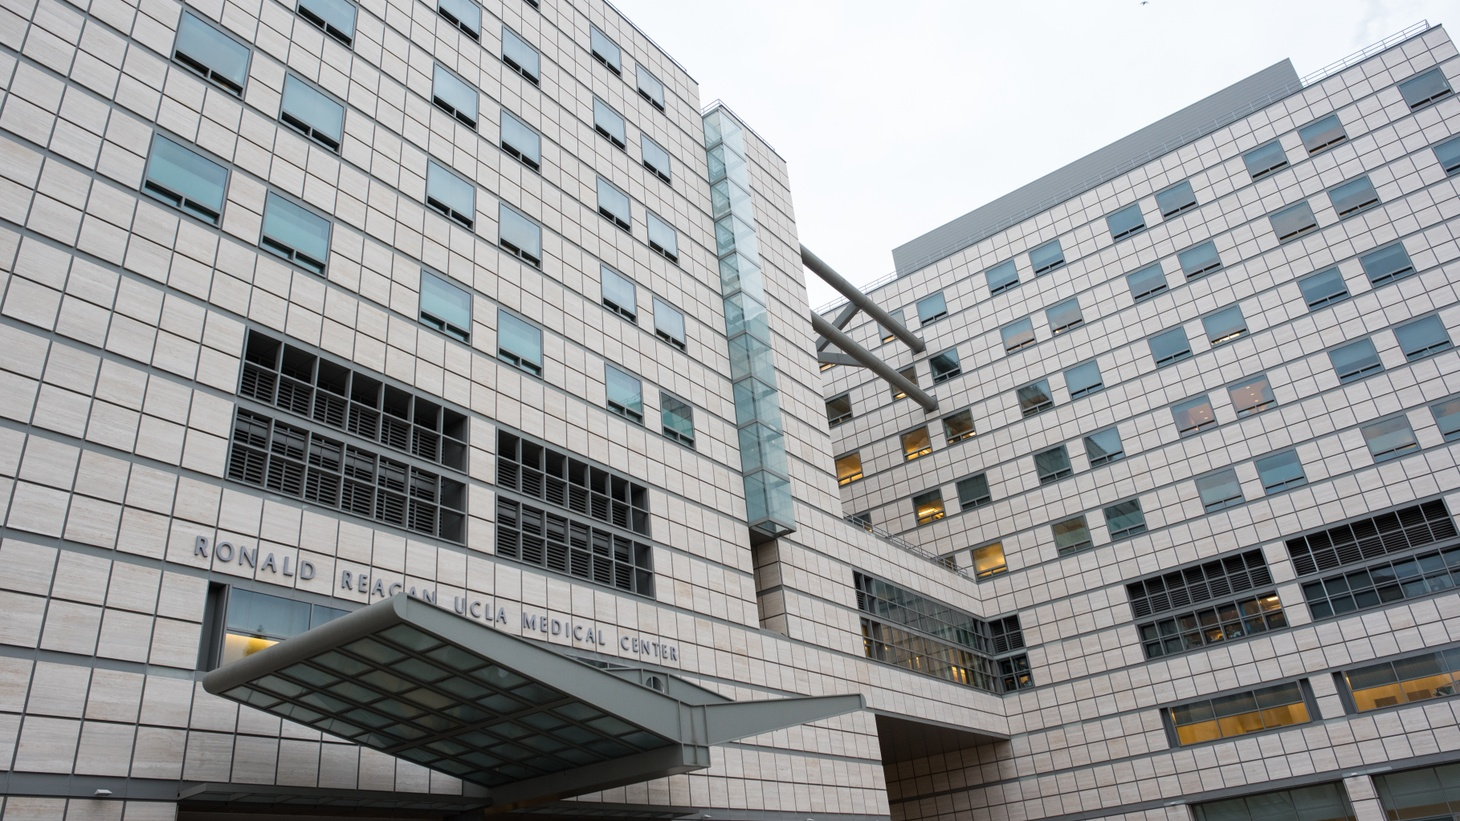 In a class action lawsuit, more than 5,500 women claim that former UCLA gynecologist James Heaps sexually abused them at Ronald Reagan UCLA Medical Center, the school's student health center or Heaps' university medical office.